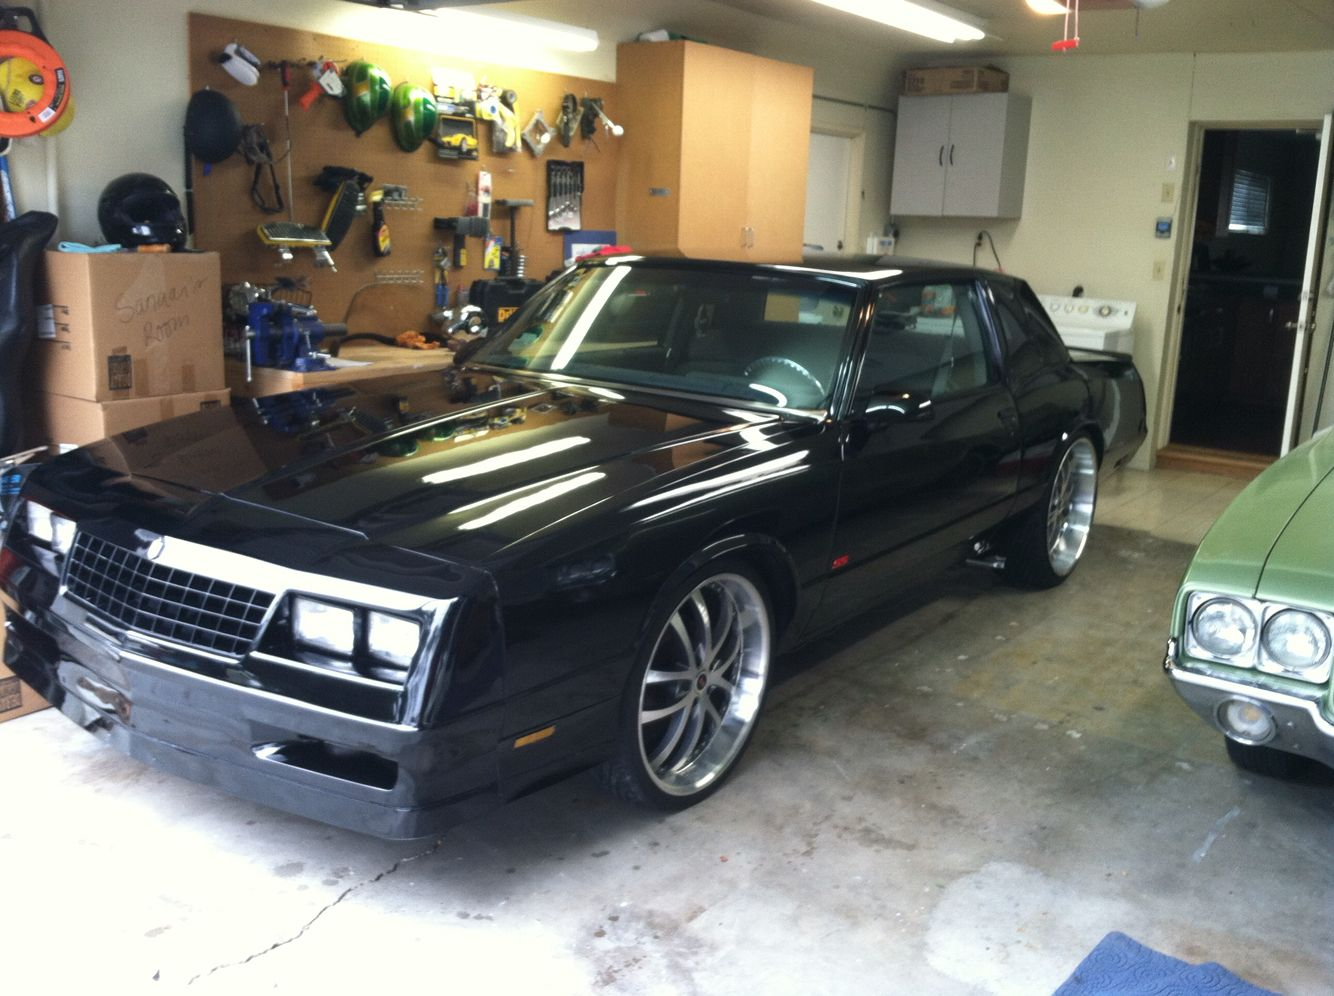 All Chevy 1985 chevy monte carlo ss for sale : 88 Monte Carlo SS | Old Schools & Bikes | Pinterest | monte Carlo ...